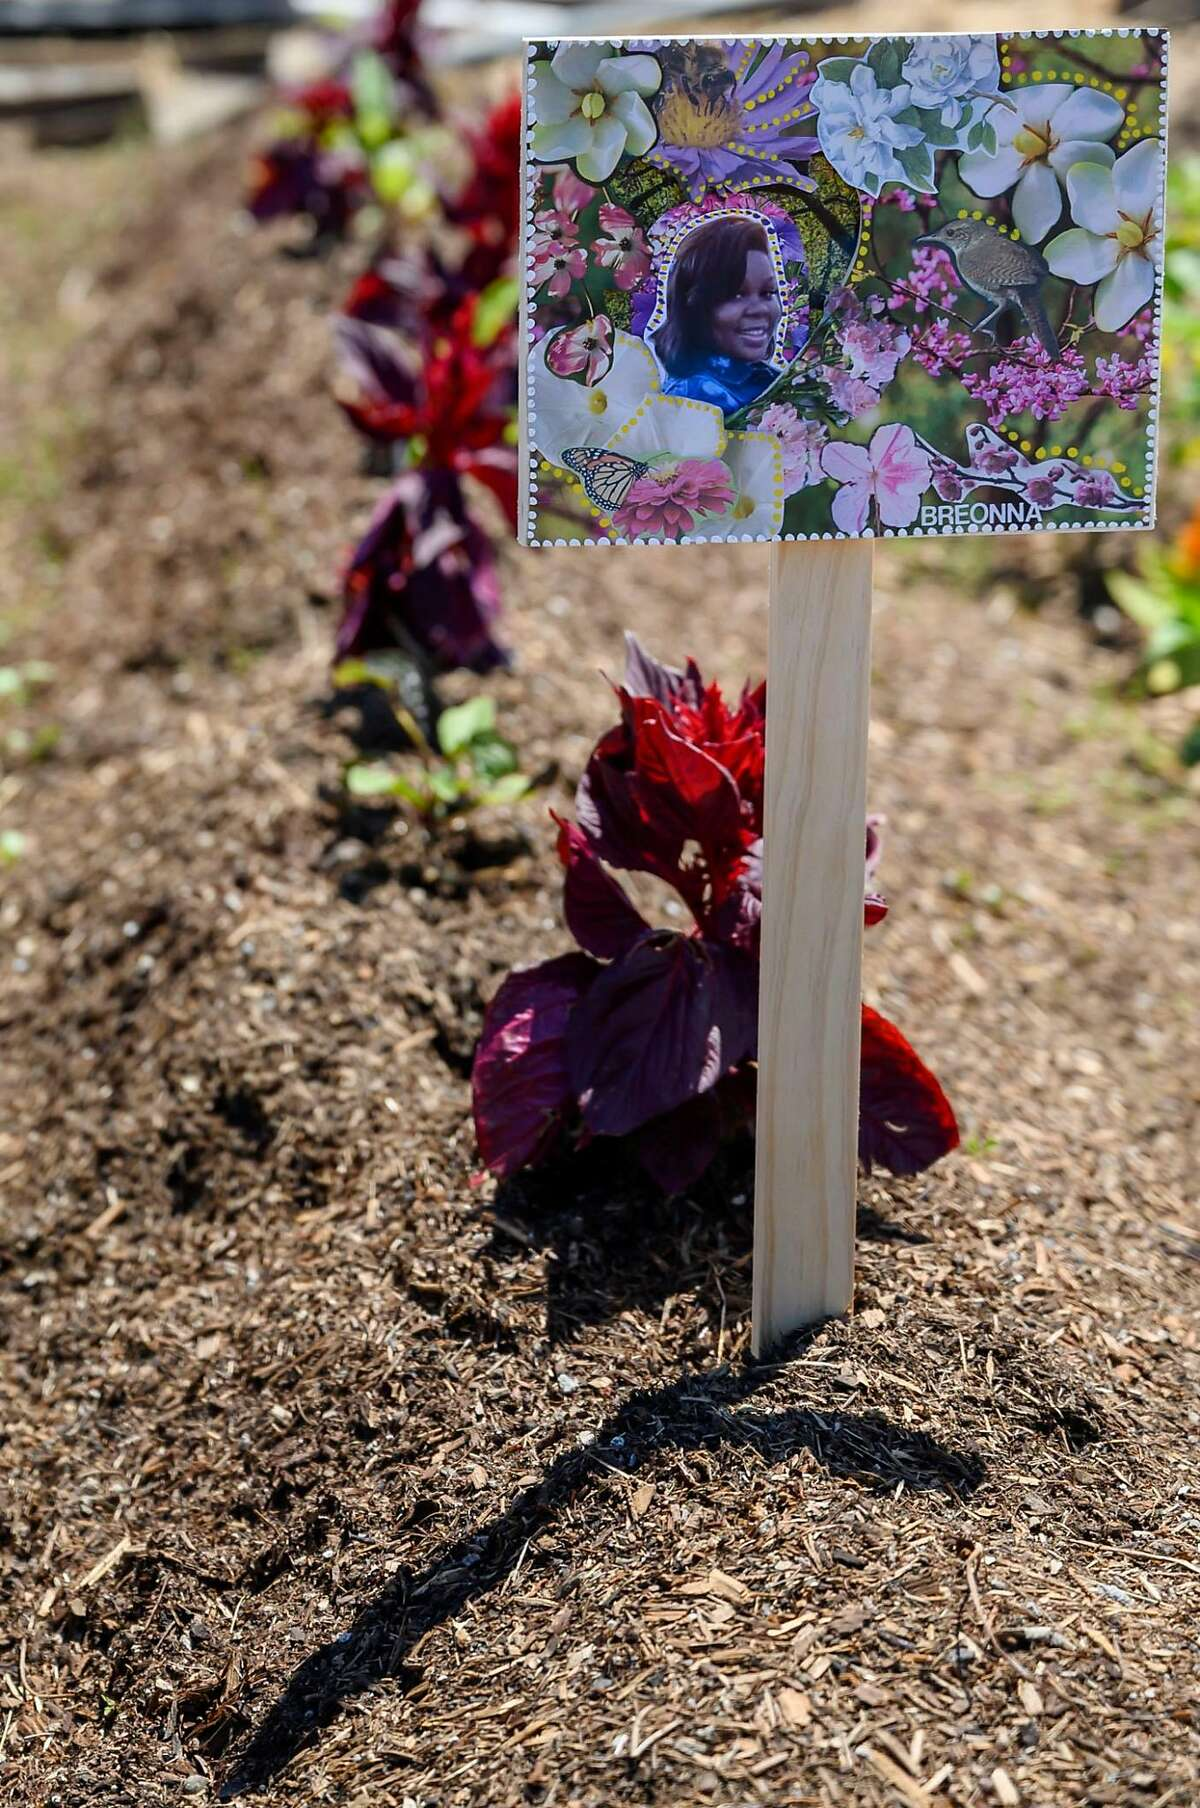 A row marker made by Danielle Fernandez bears a photo of Breonna Taylor, a Louisville woman who was killed by police officers during a no-knock-warrant in March, is illuminated by the sun on Friday, July 17, 2020 at Loyal to the Soil urban garden in San Francisco, Calif.